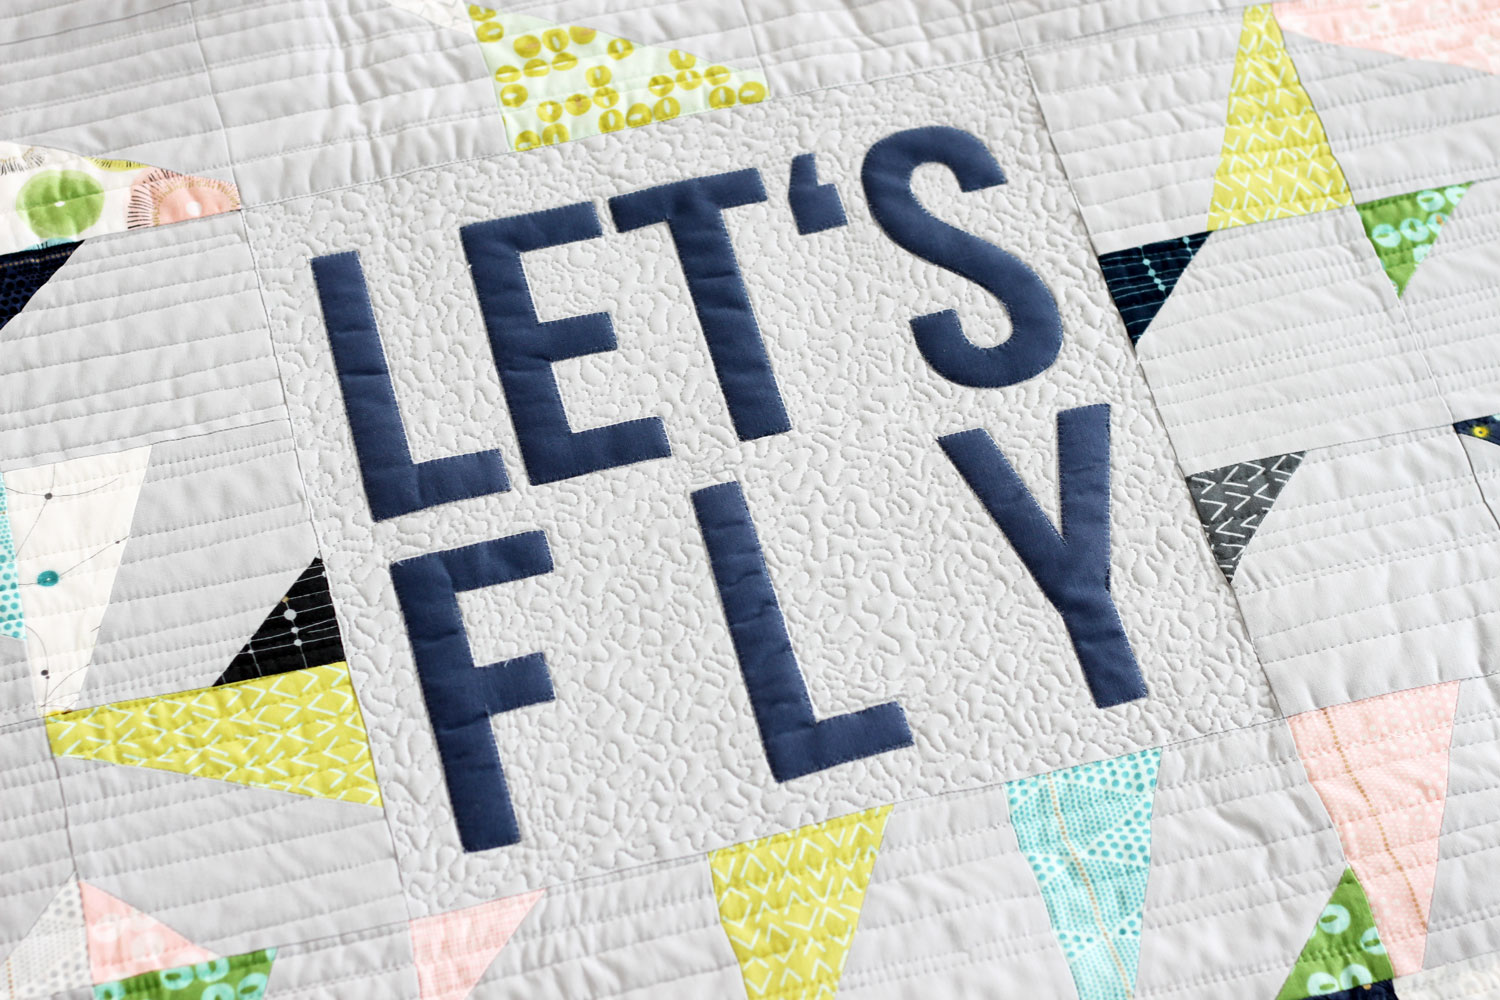 Let's Fly, improvisational modern quilt pattern by Zen Chic, using Charm Packs from the collection Day in Paris by Zen Chic for Moda